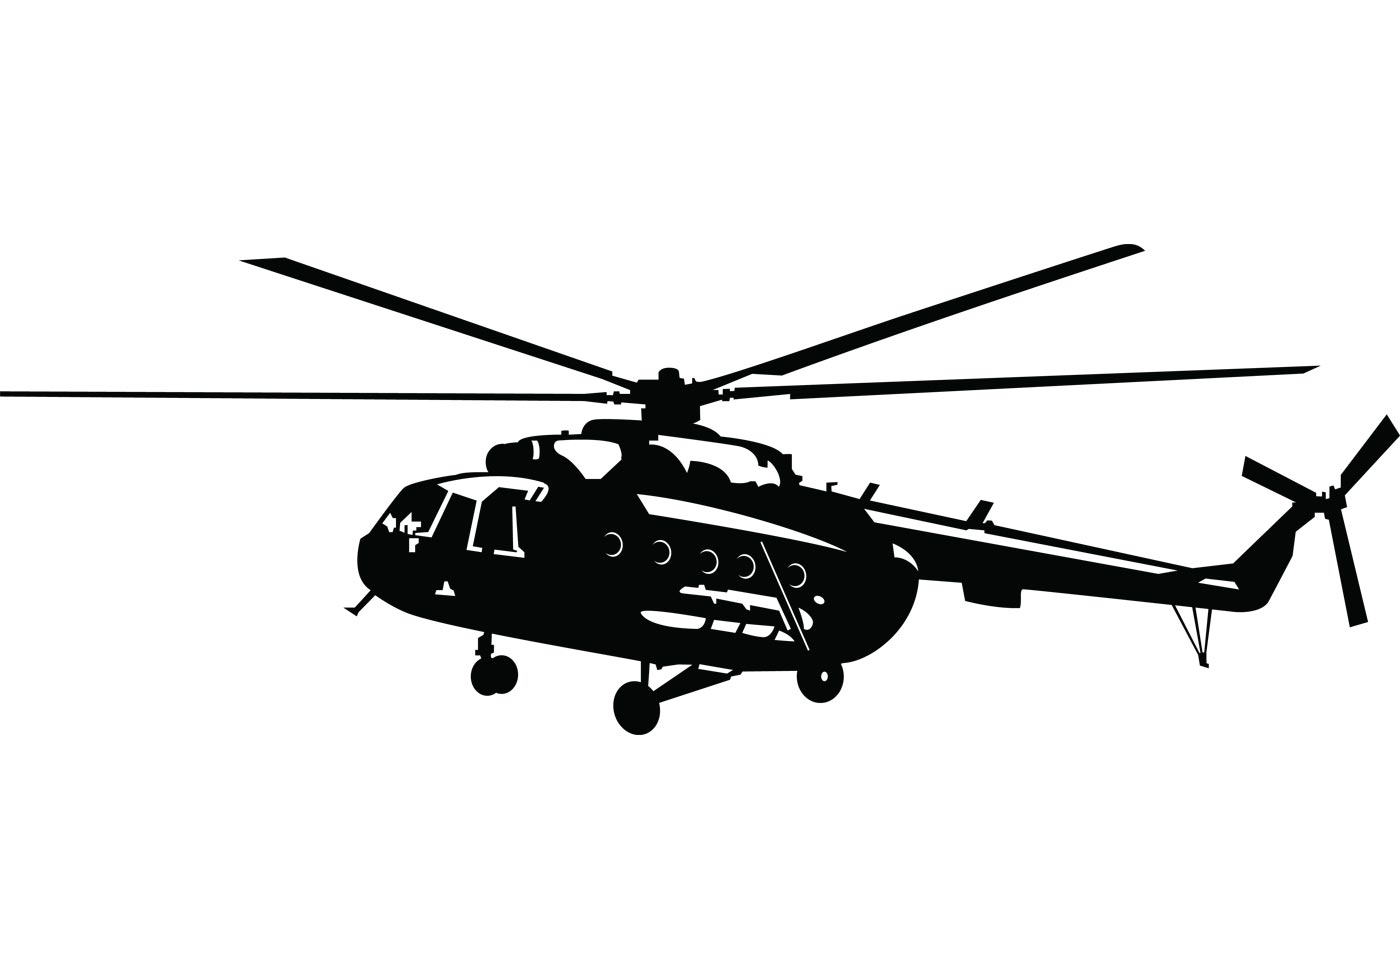 Helicopter Images Download The Best 10 Battleship Games